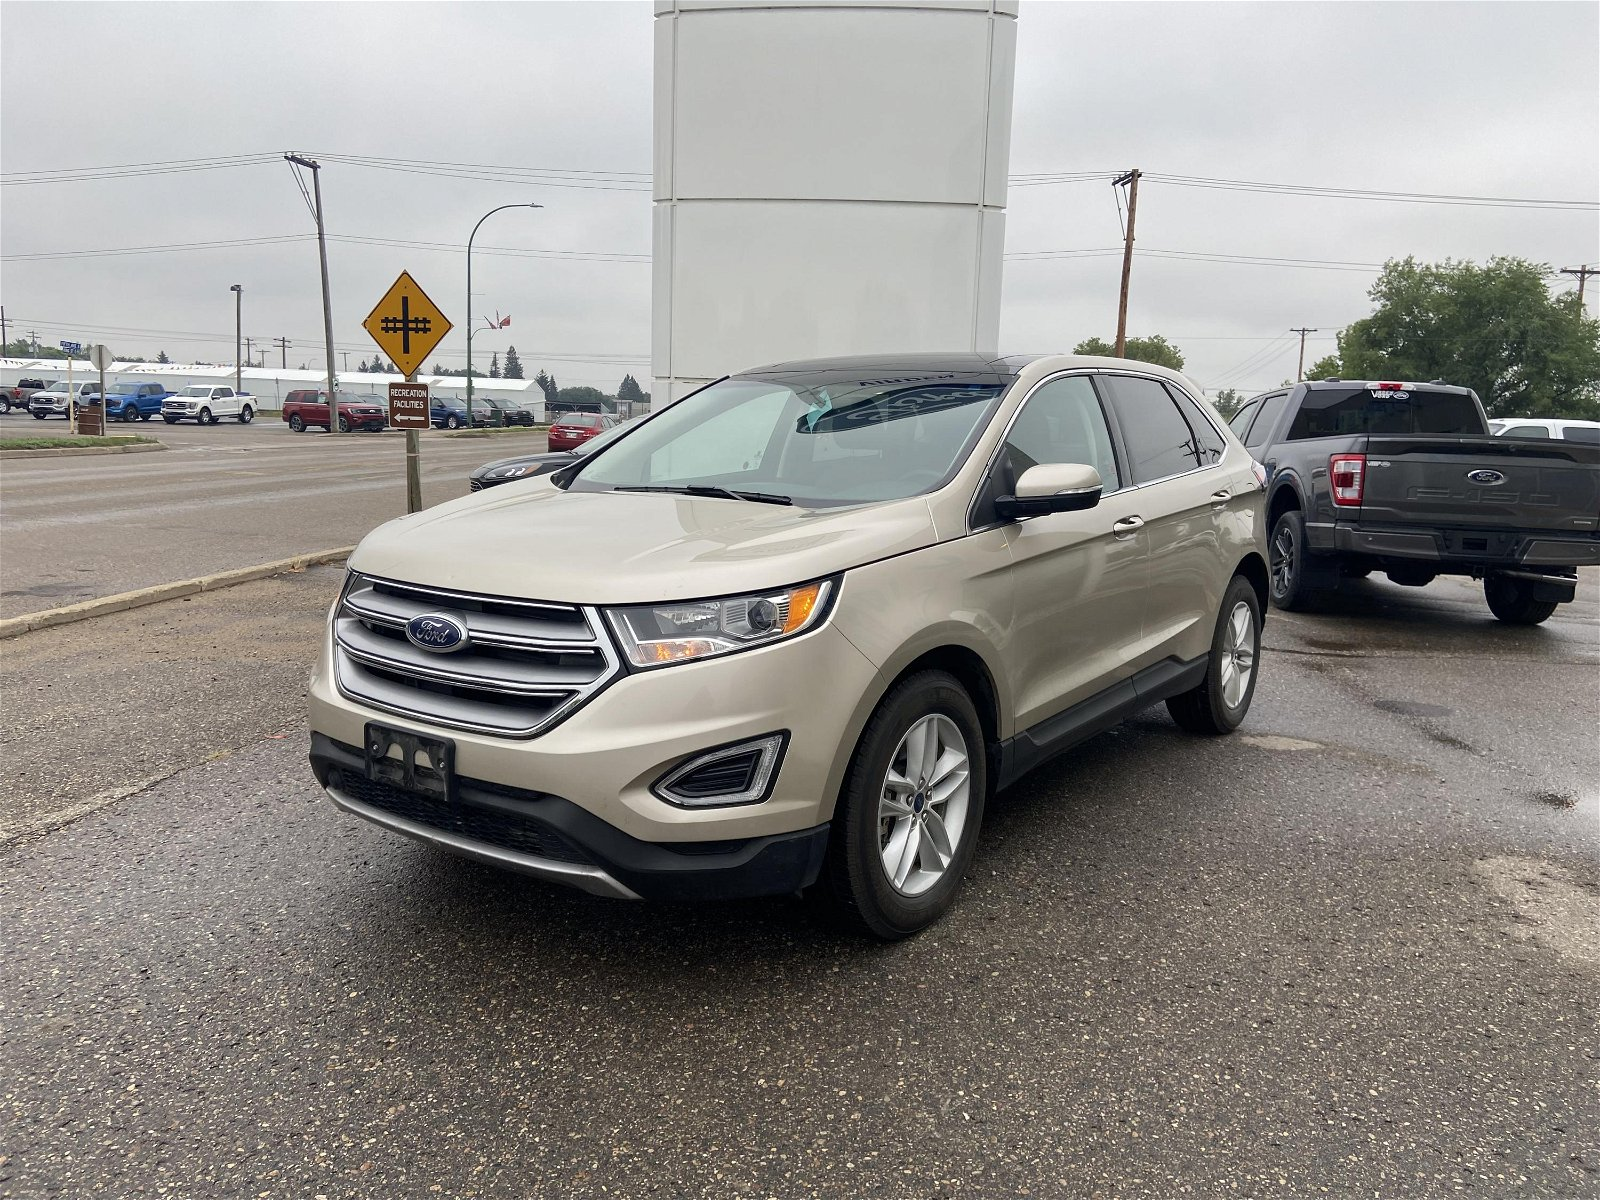 2018 Ford Edge SEL AWD Leather HTD wheel PWR gate